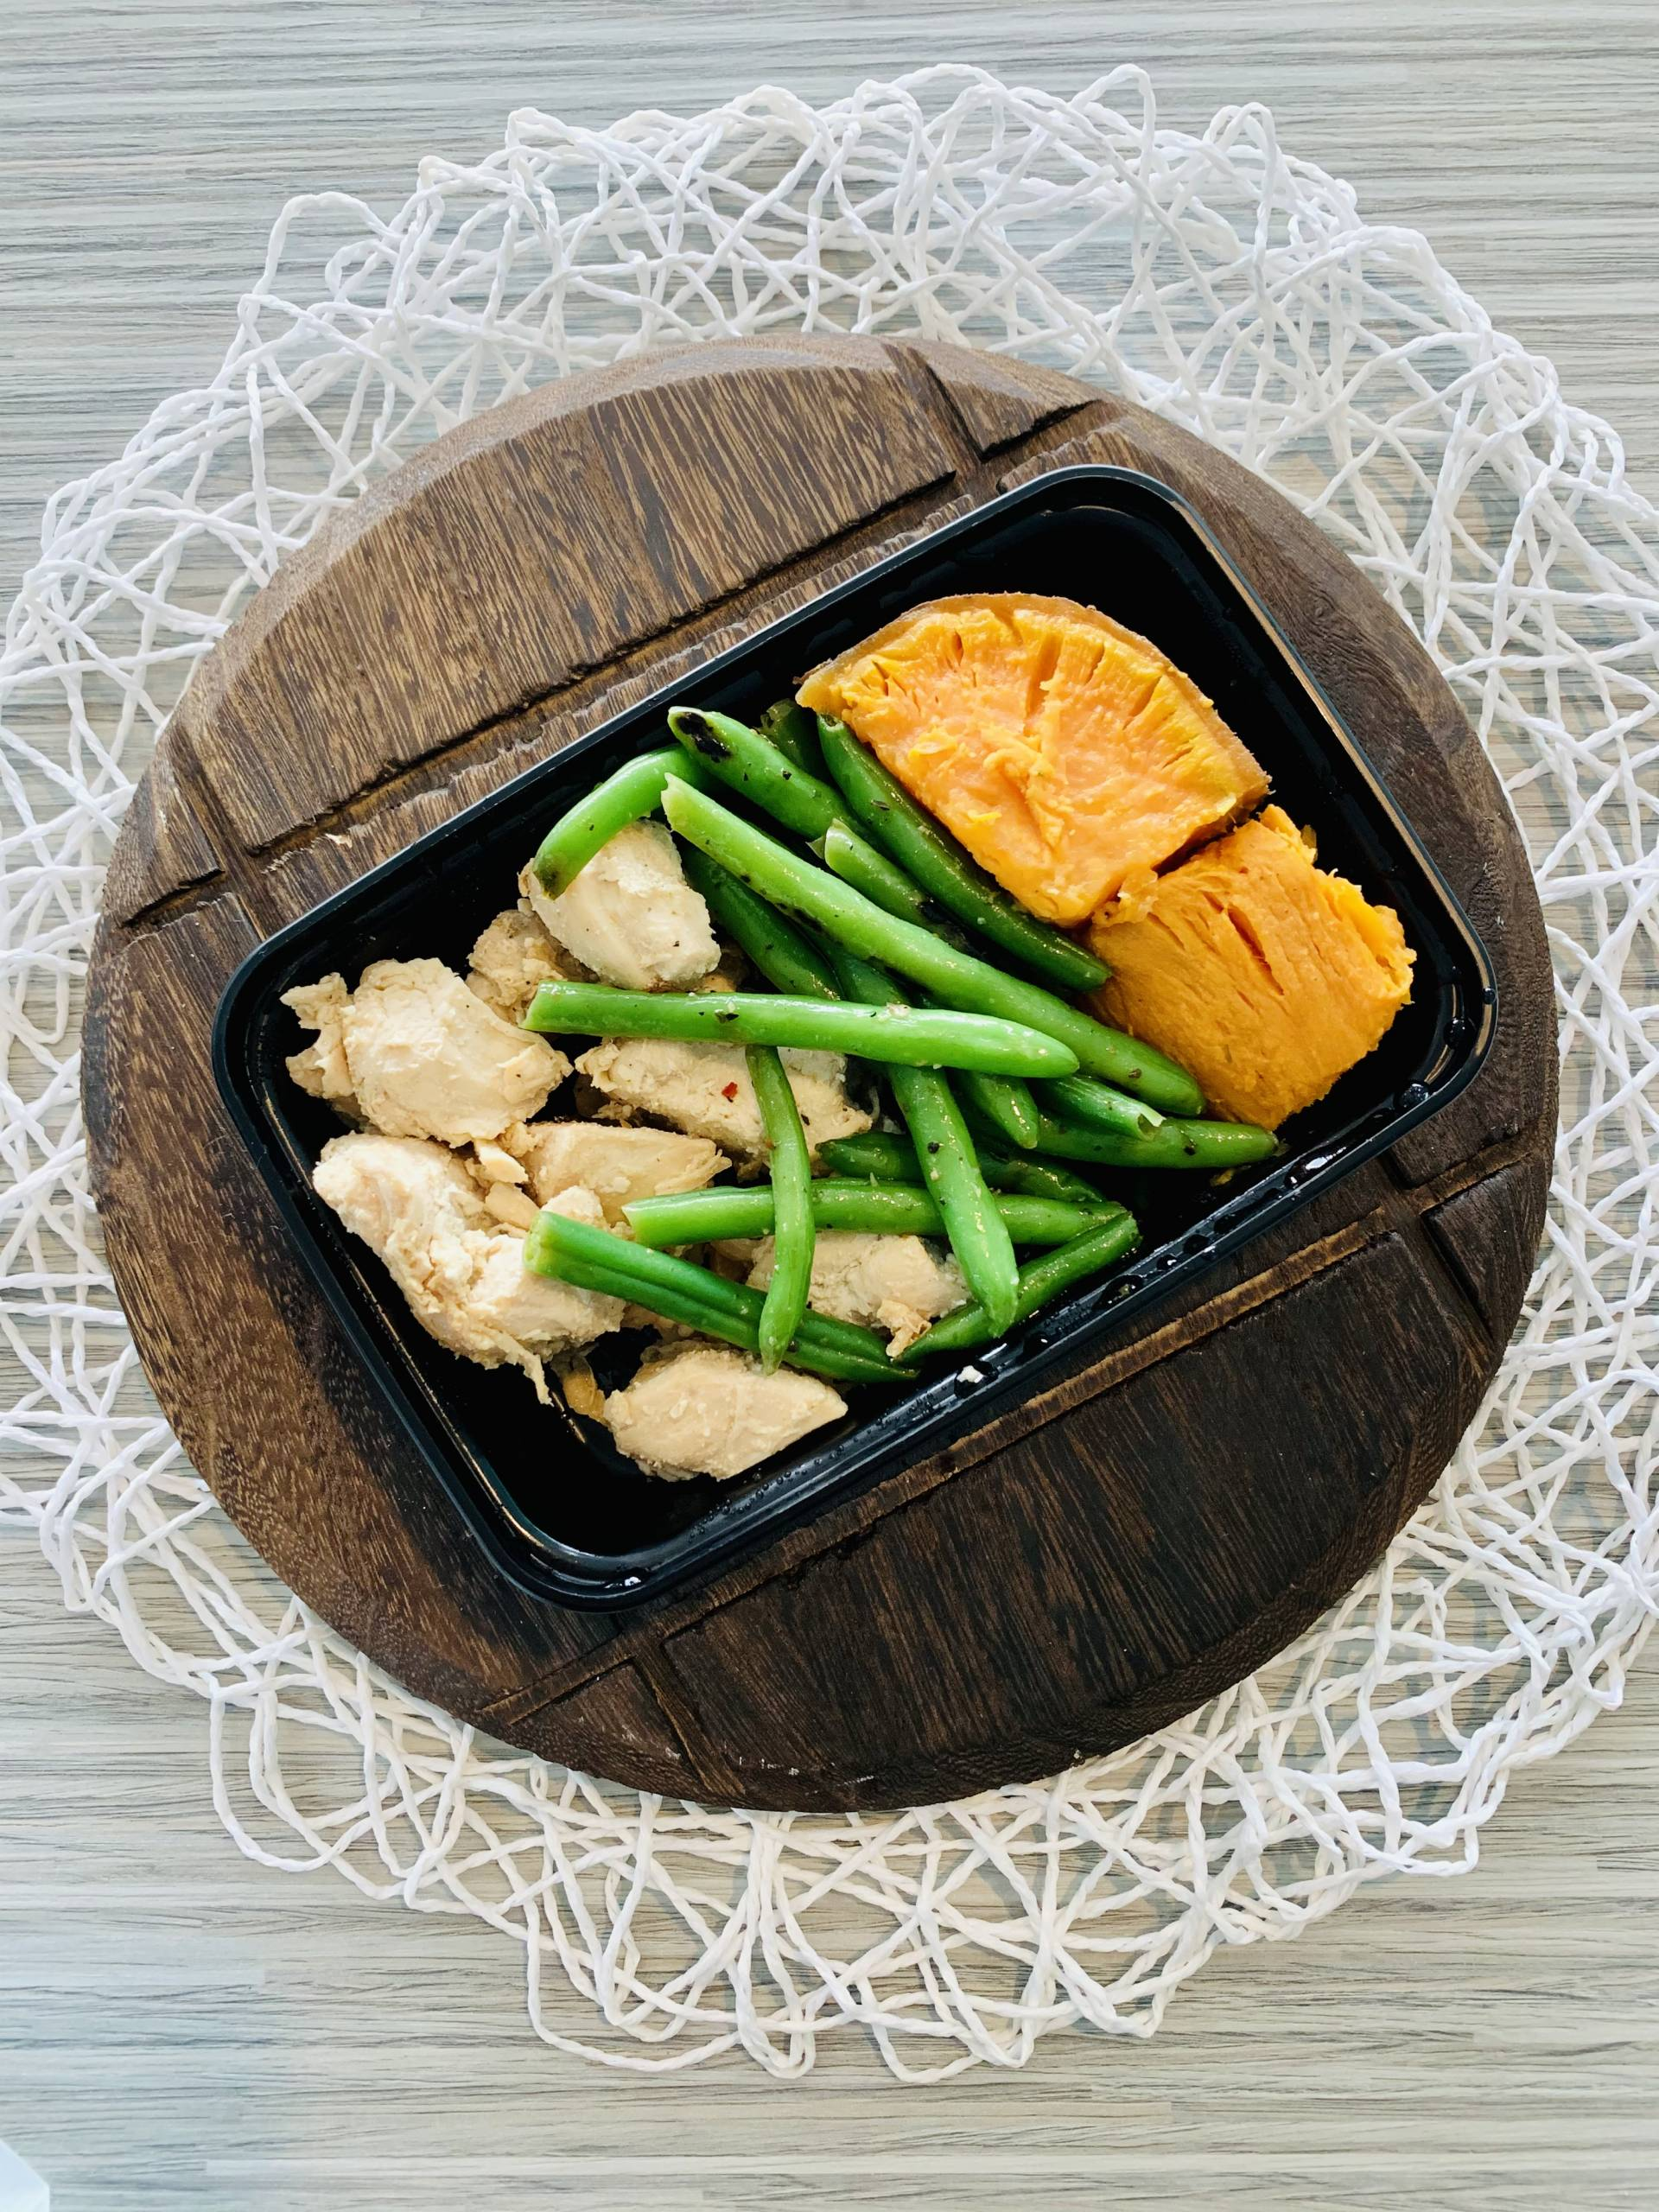 Grilled Chicken, Sweet Potato and Green Beans